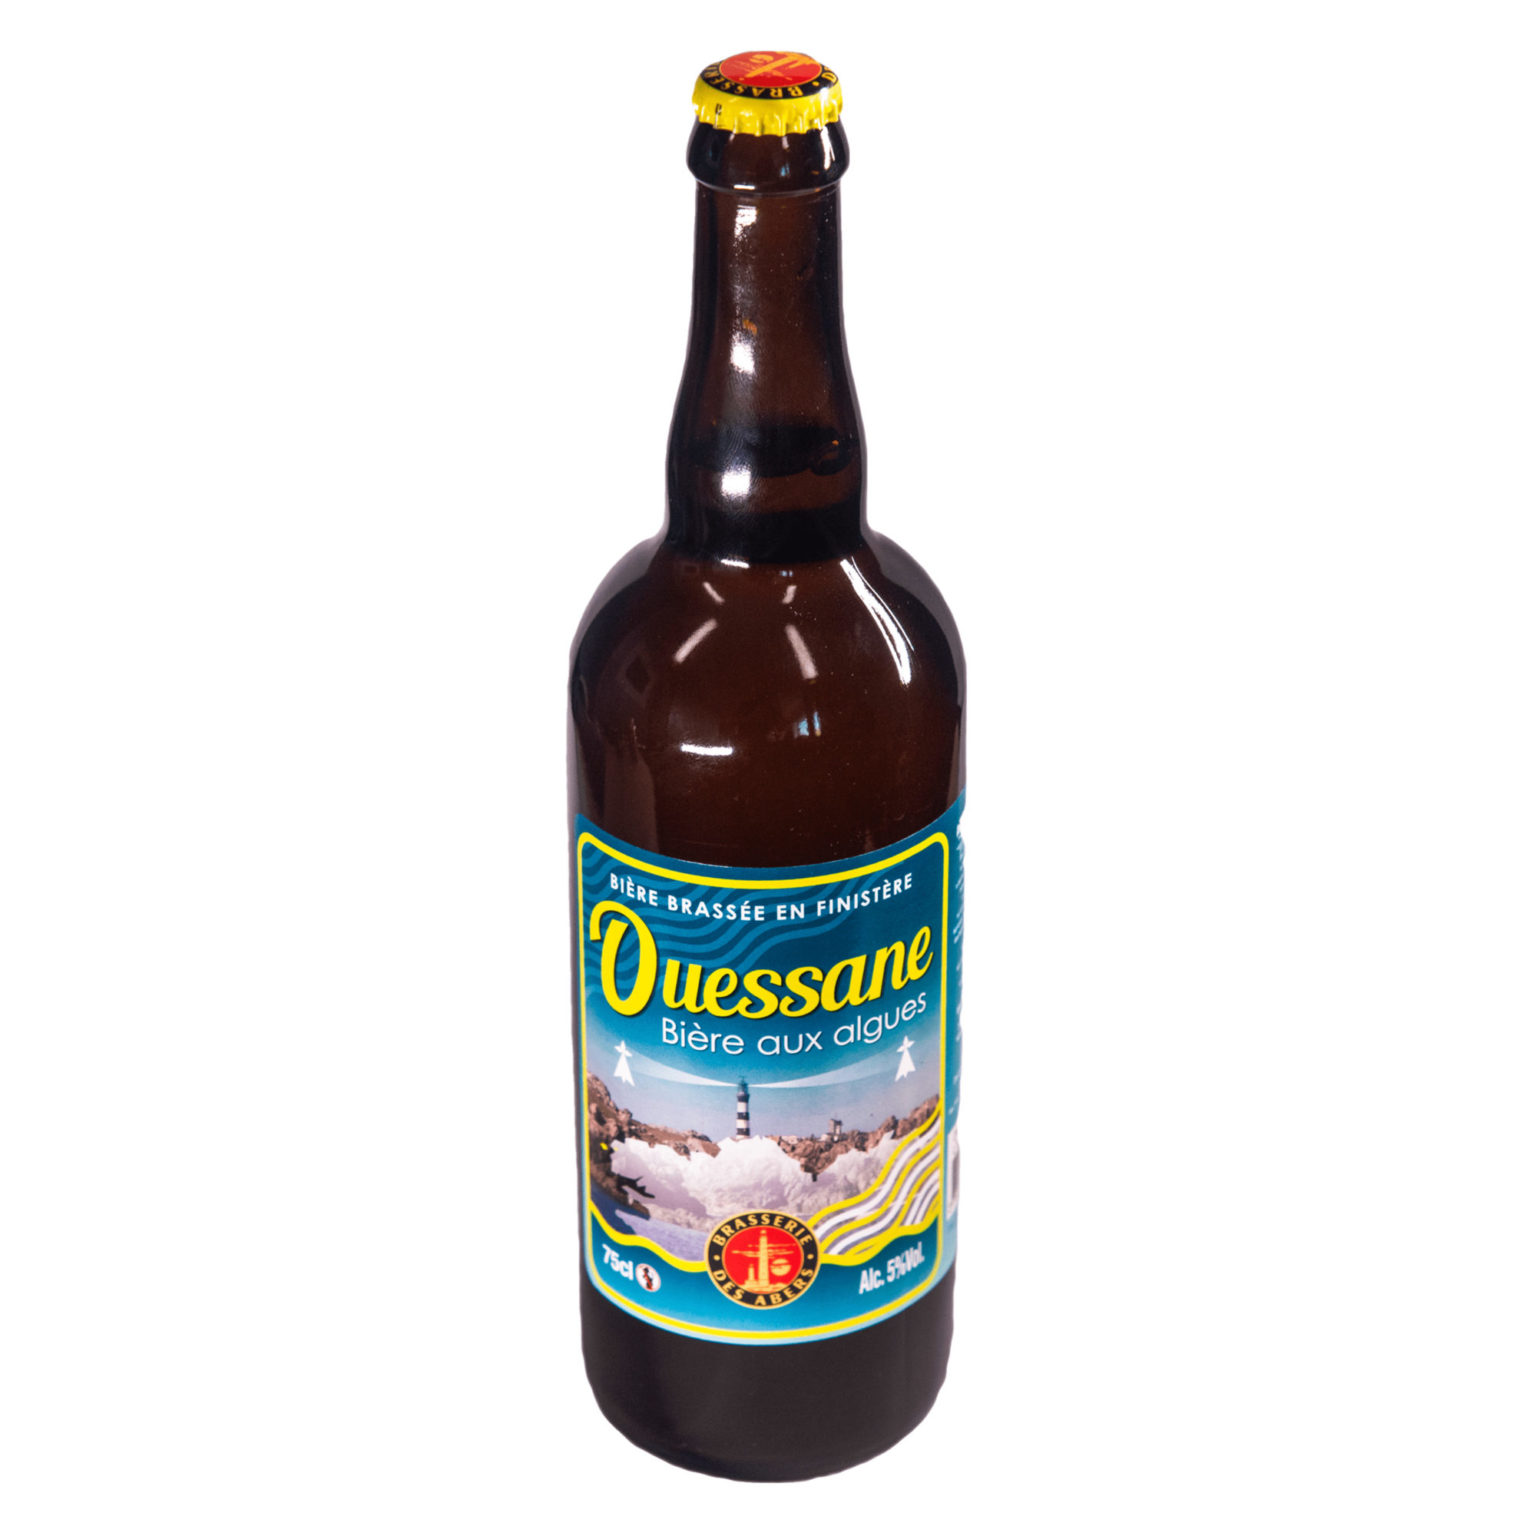 ouessane 75cL